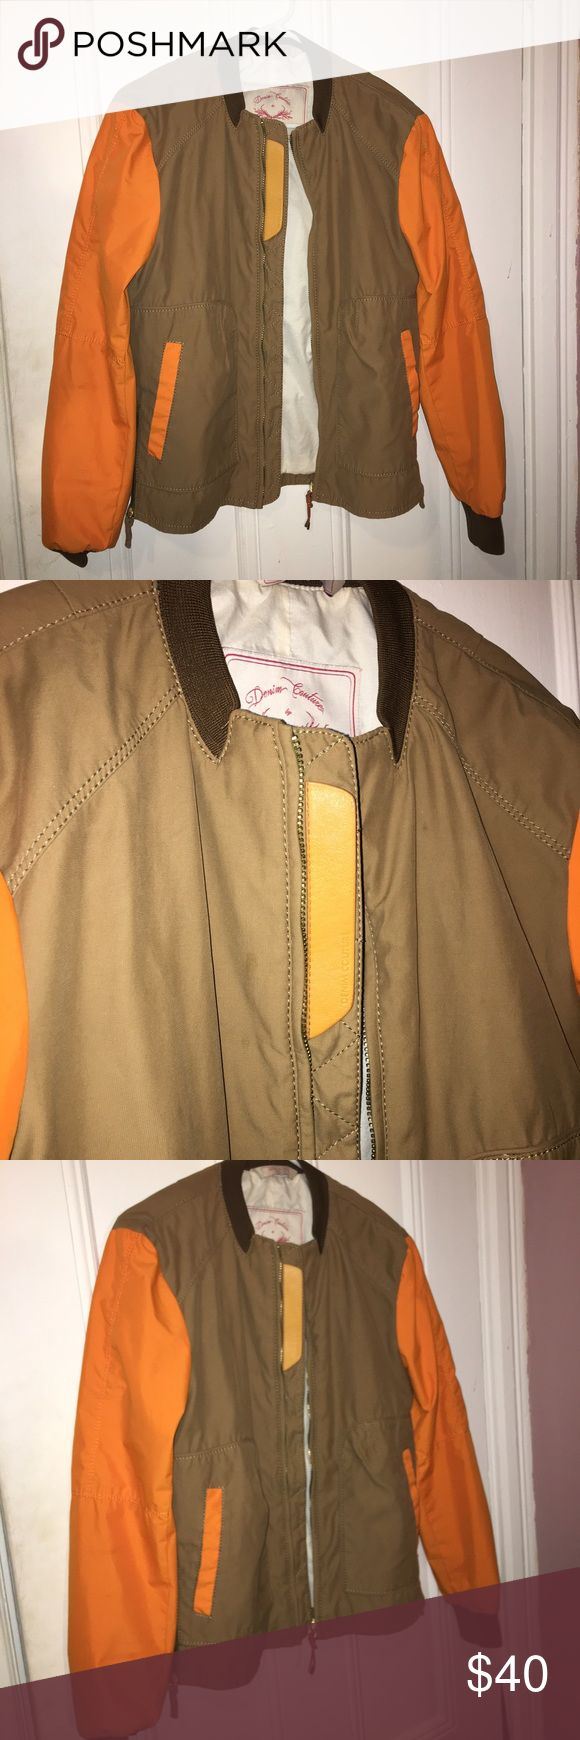 Zara bomber ✨🤑 Zara men's bomber in size M I'm a women's medium and this fit perfectly so it would fit a women's s-m so chic with leather detailing. Was pretty pricey! Ready to ship next business day 👍 tags : Kanye , yeezy , Kylie Jenner , Kim K . Zara Jackets & Coats Utility Jackets